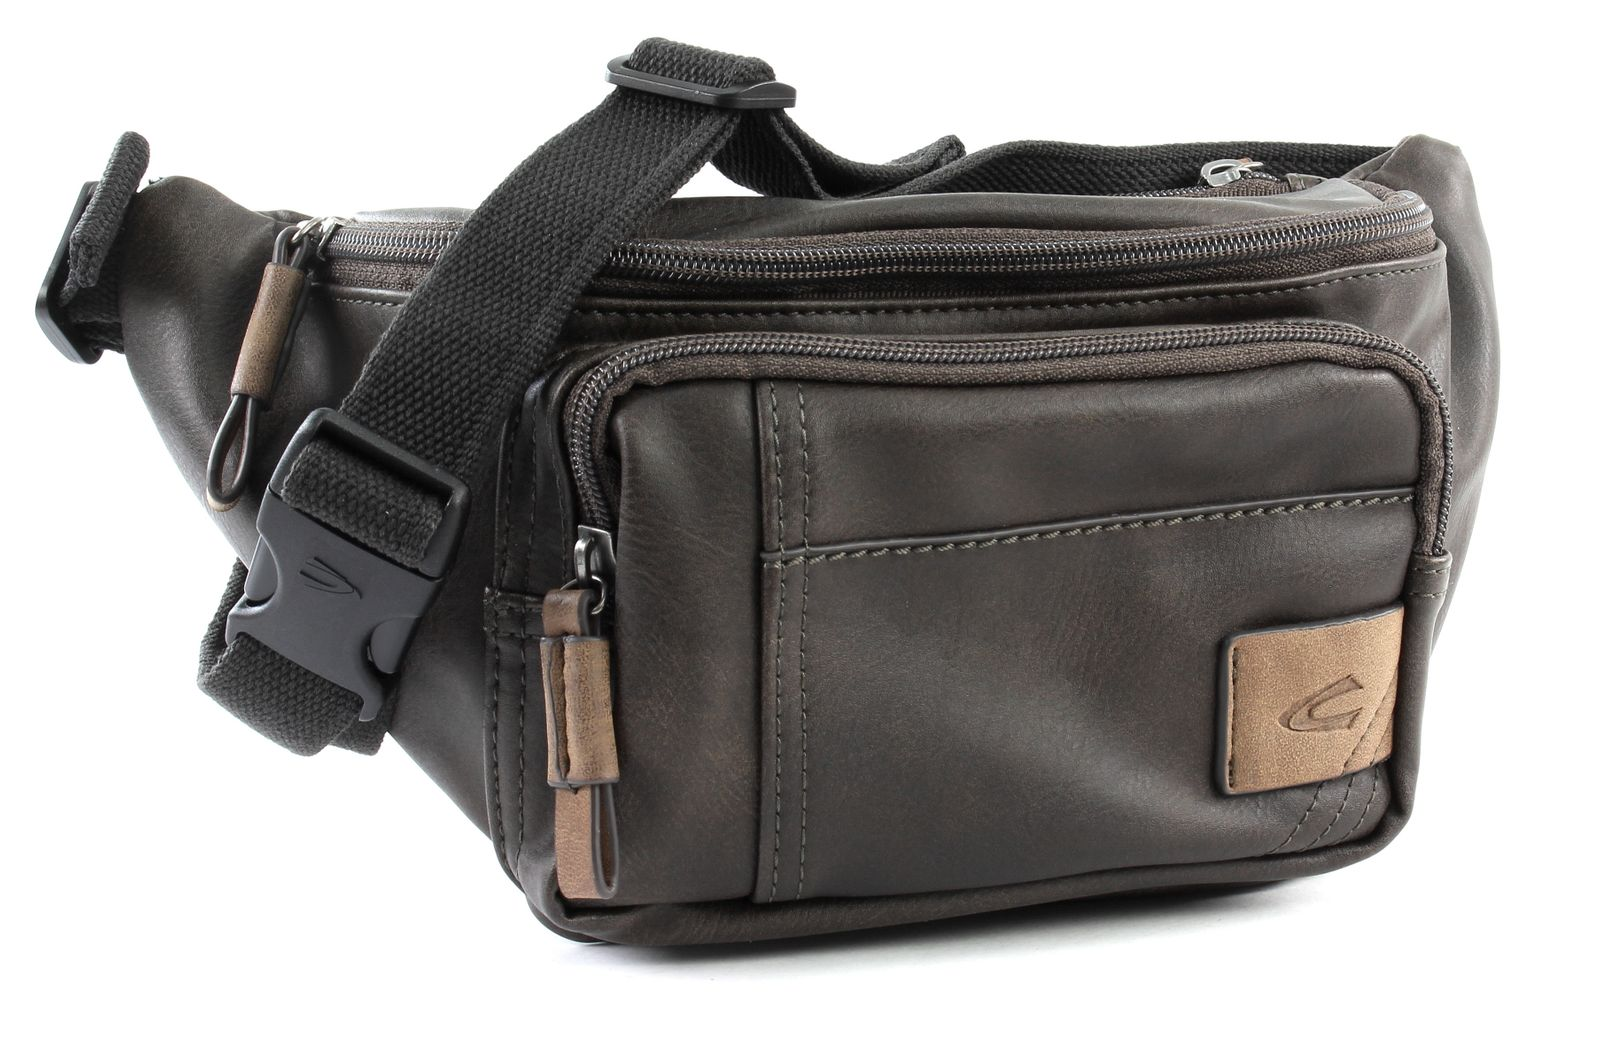 camel active Laos Belt Bag Black